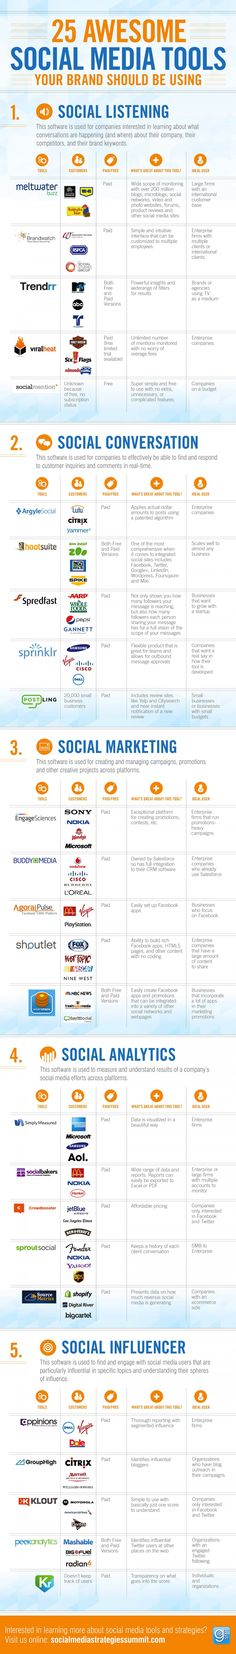 25 Awesome Social Media Tools Your Brand Should Be Using | Infographic